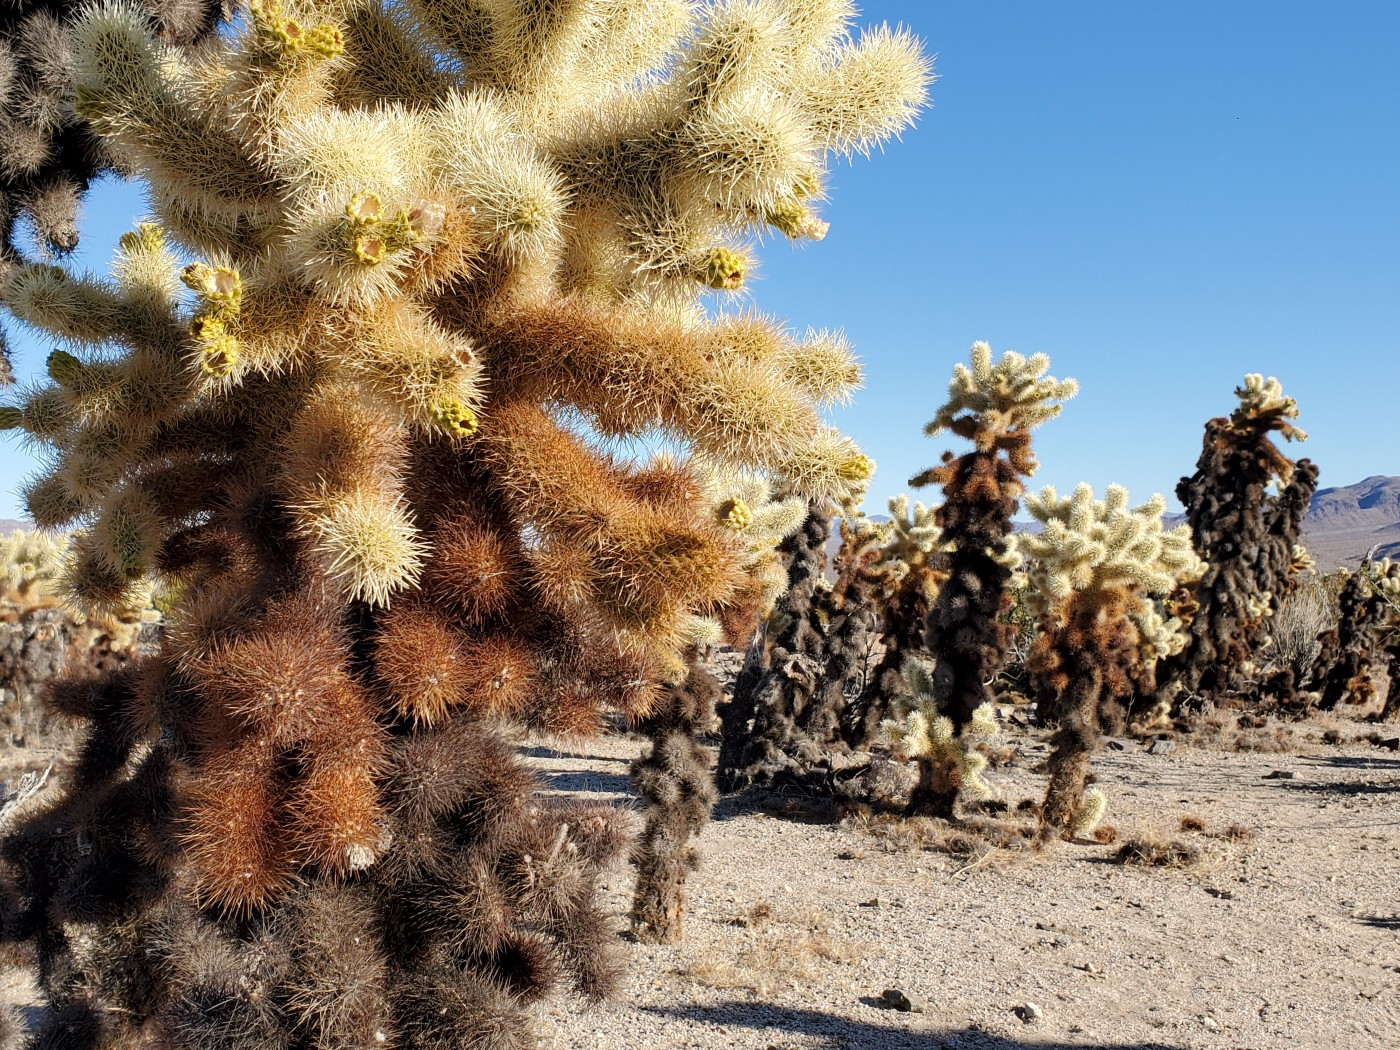 Yucca Brevifolia, commonly known as Joshua tree